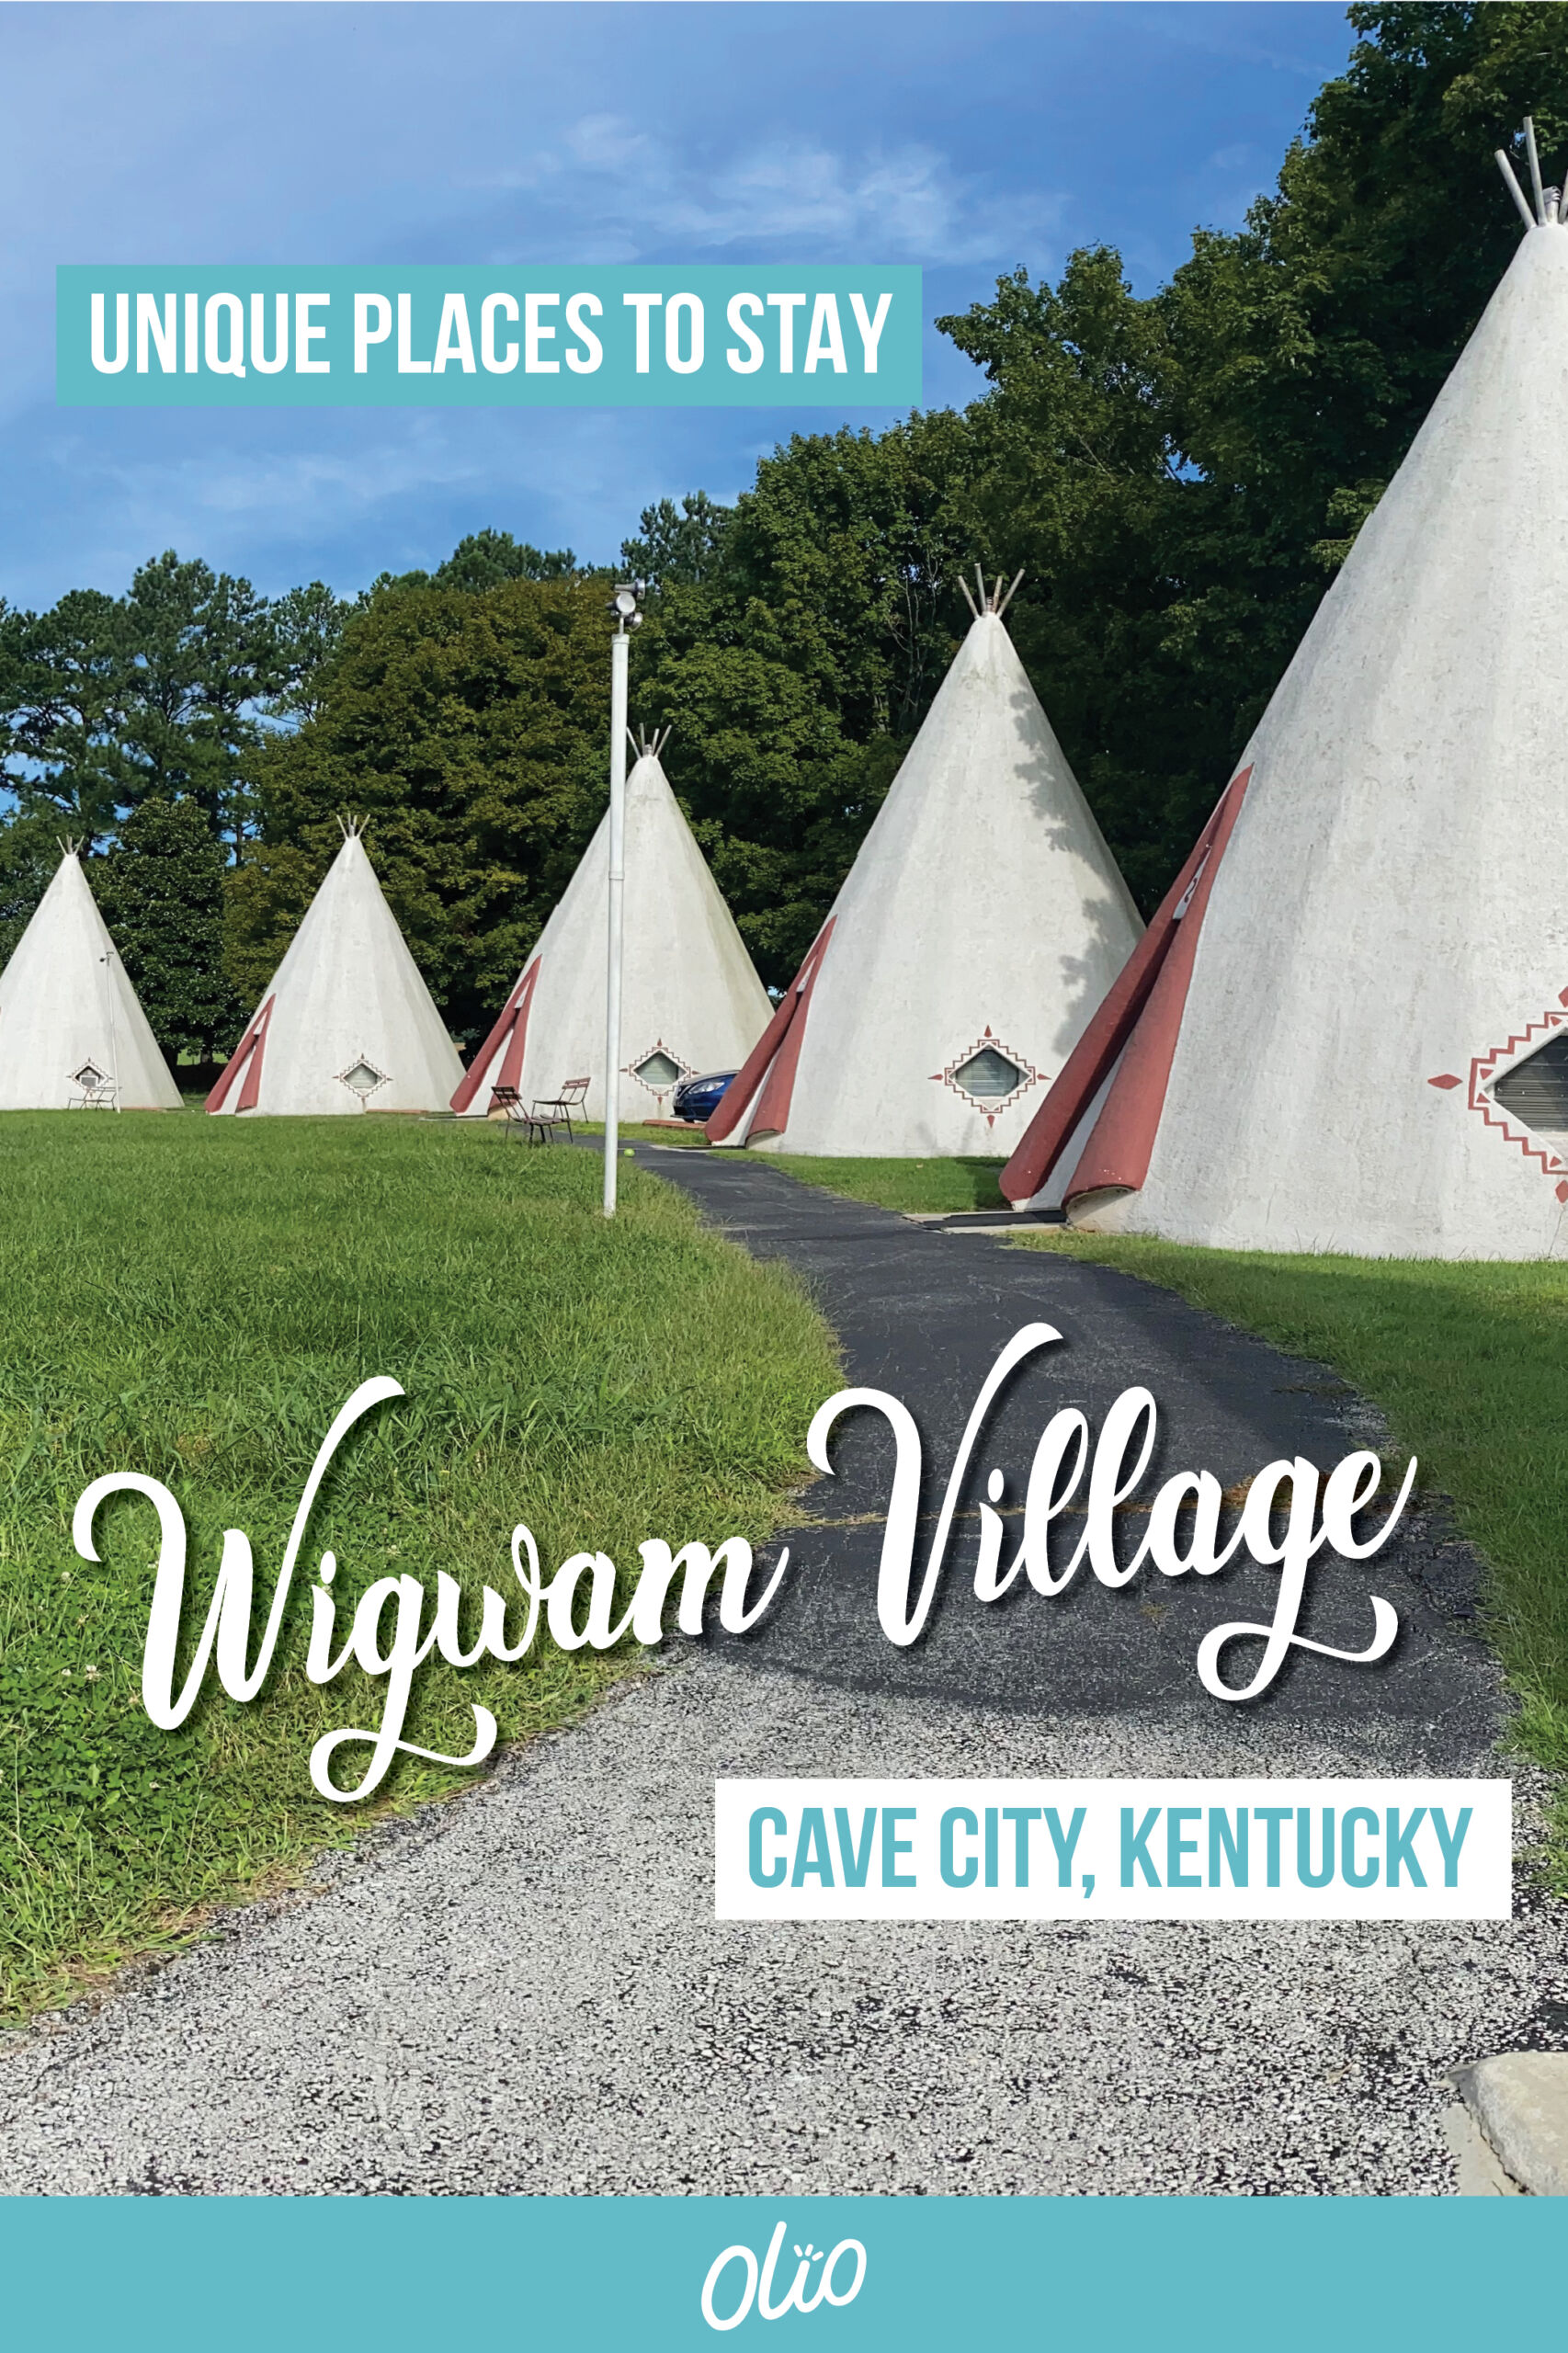 Spend a night in a piece of kitschy roadside history when you stay at the Wigwam Village Inn #2 in Cave City, Kentucky! These historic teepee-shaped rooms were built in the 1930s and still welcome guests year-round. #Kentucky #Americana #RoadsideAmerica